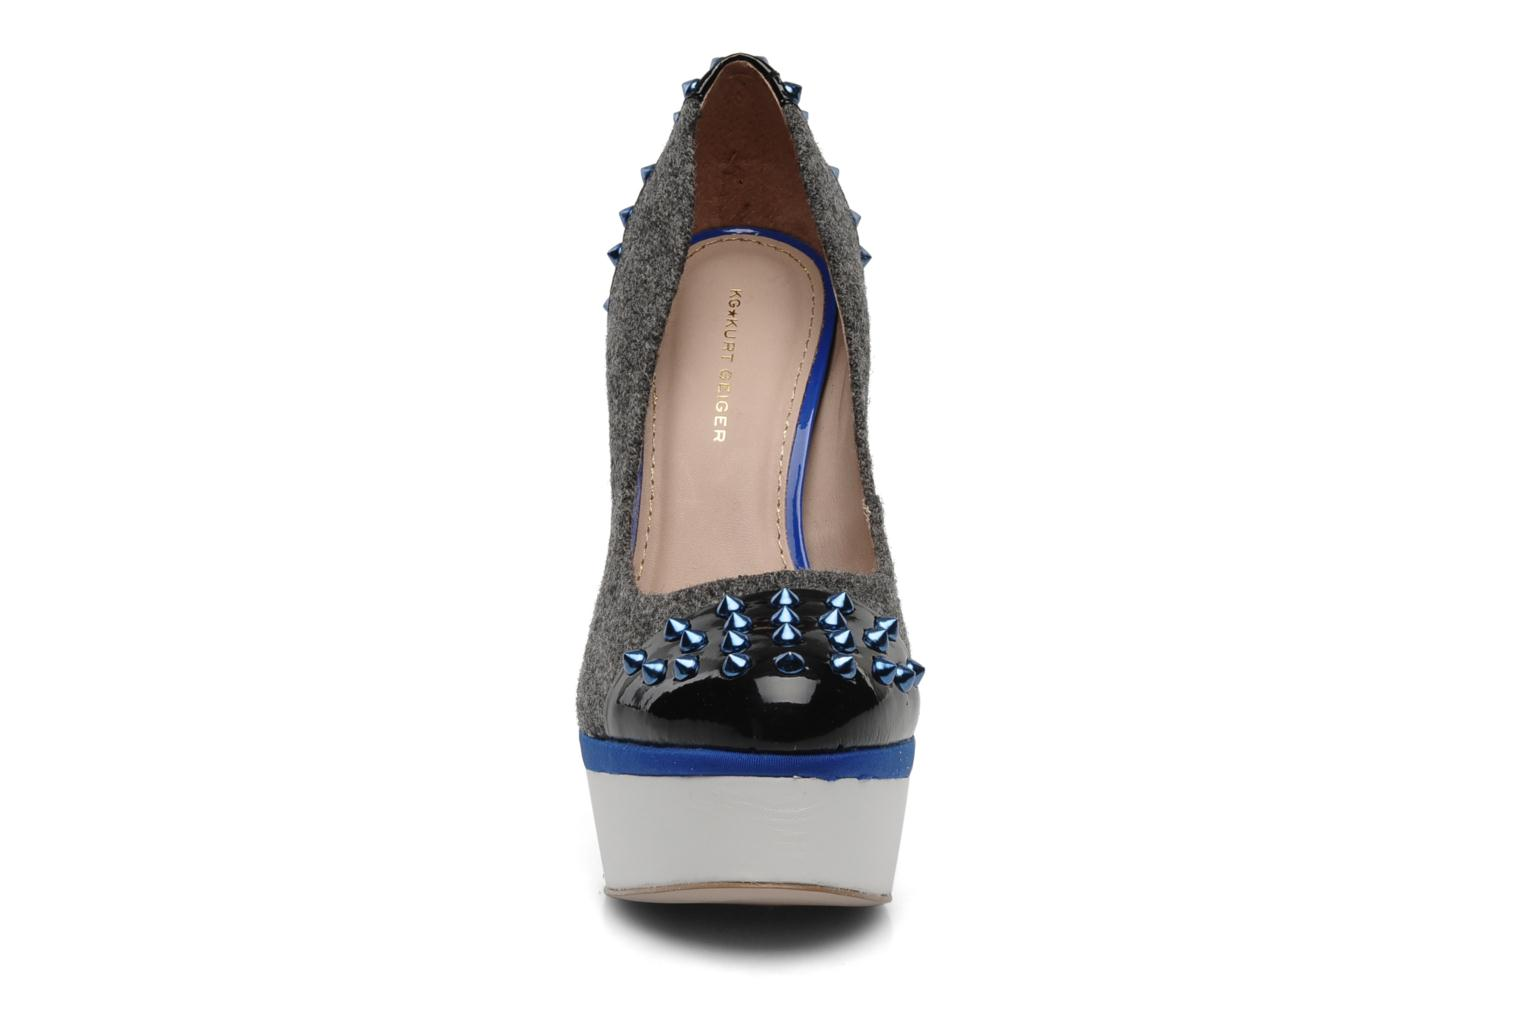 ESME TWEED / BLUE /BLACK PAT